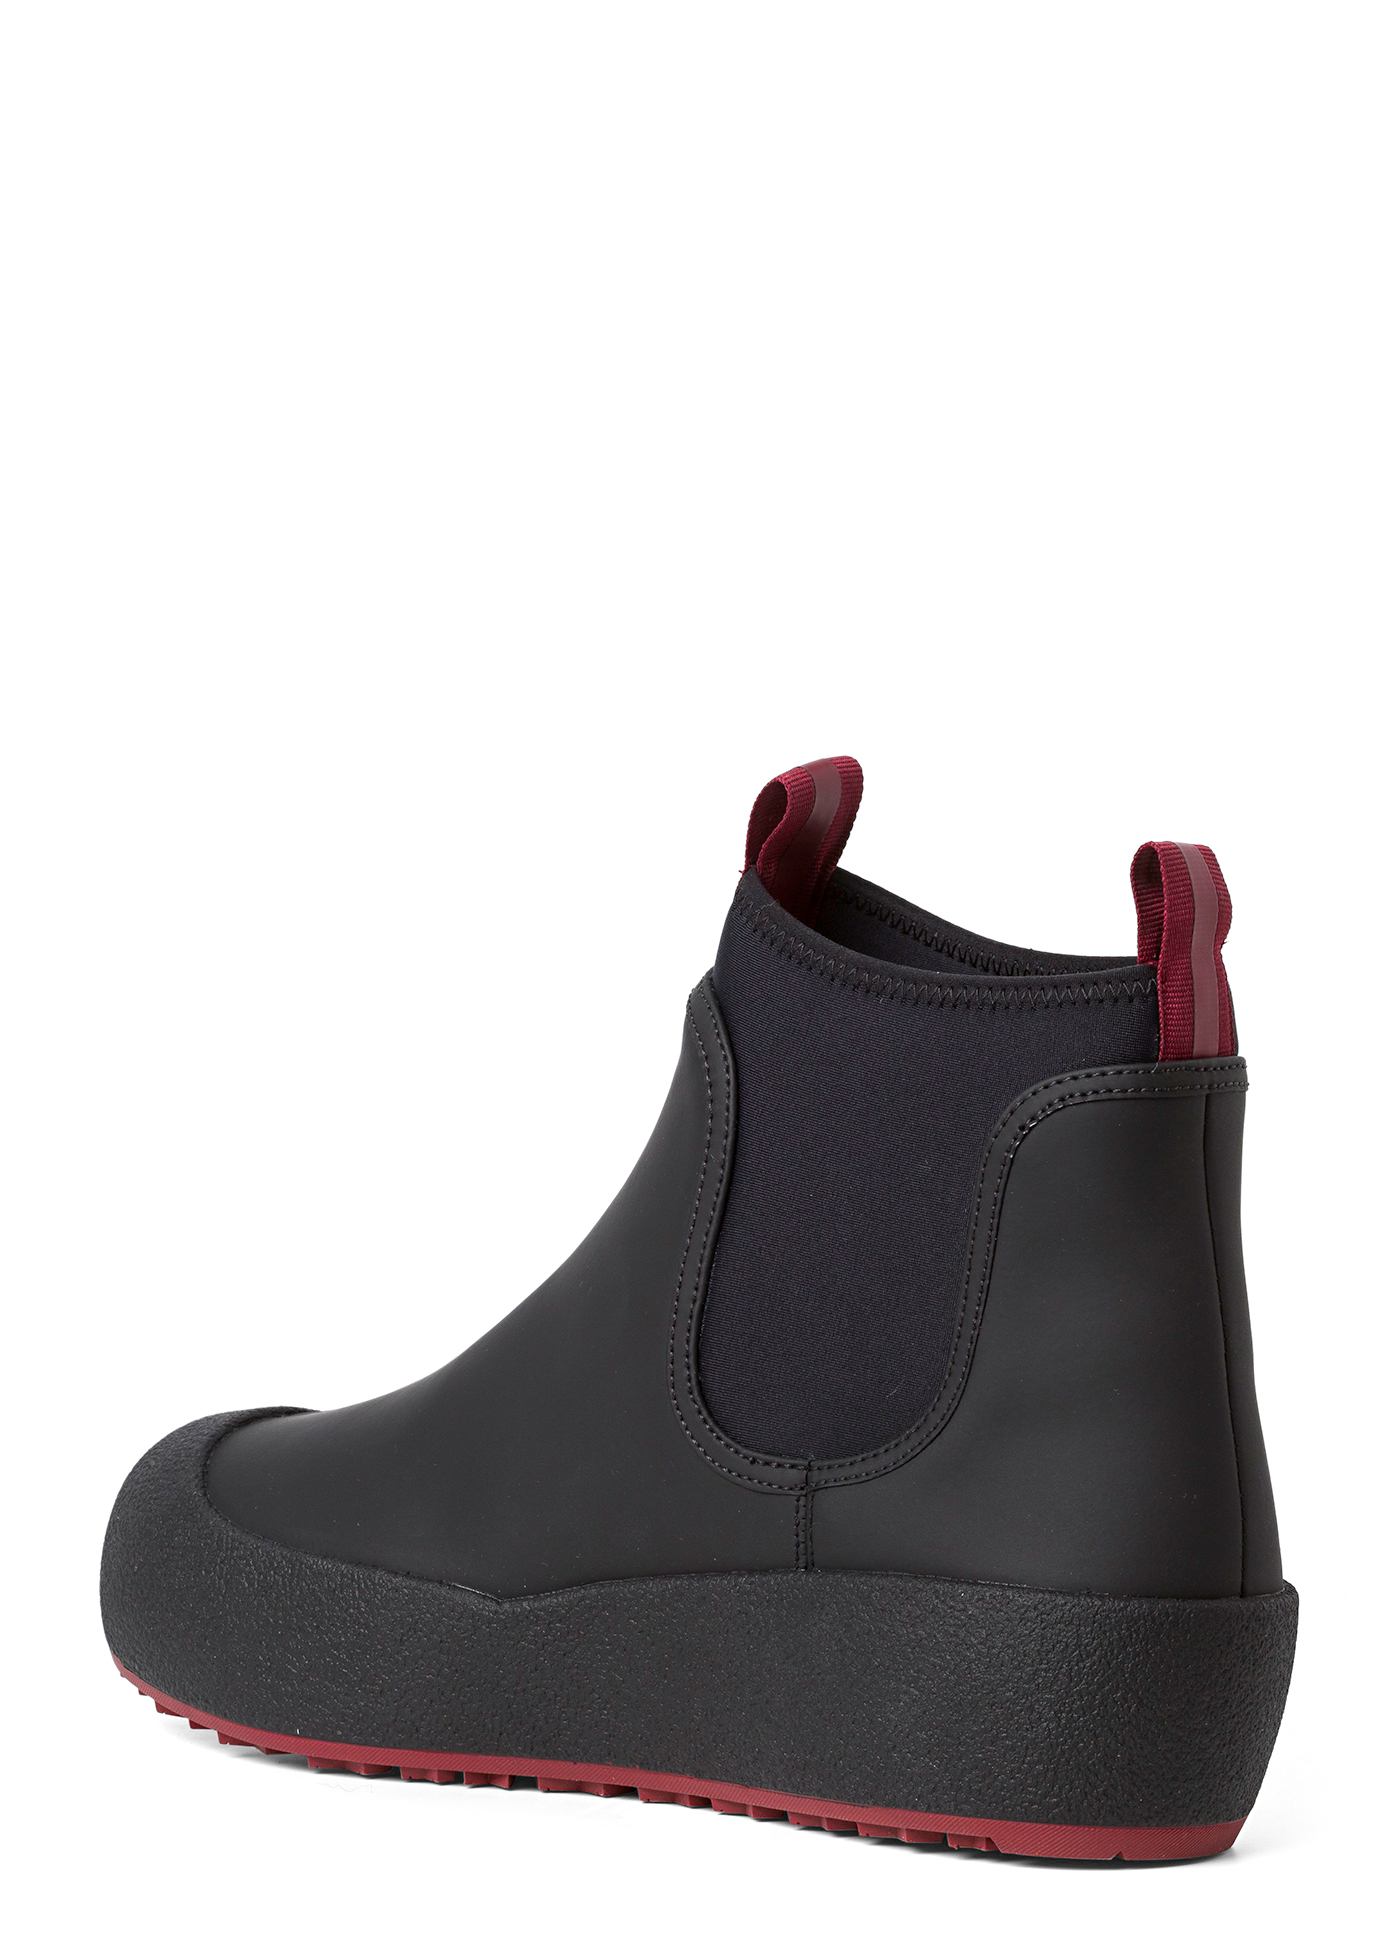 CUBRID/120 SNOW BOOT image number 2